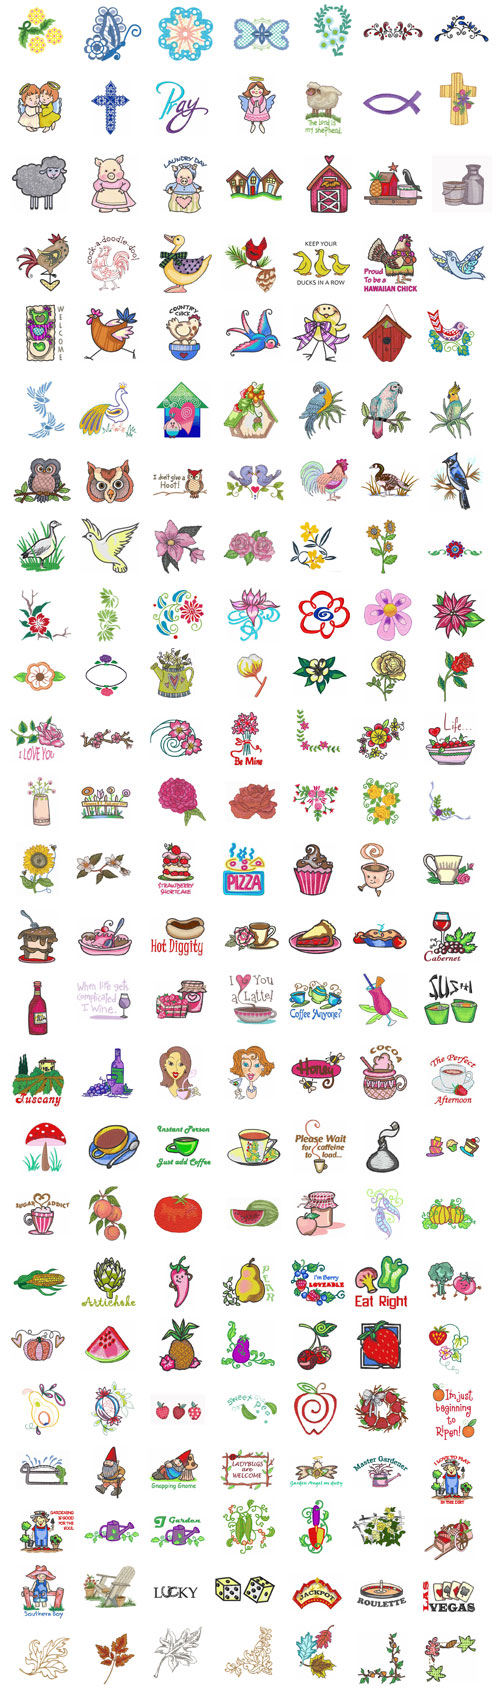 82-inspirationcollectables1-designs02